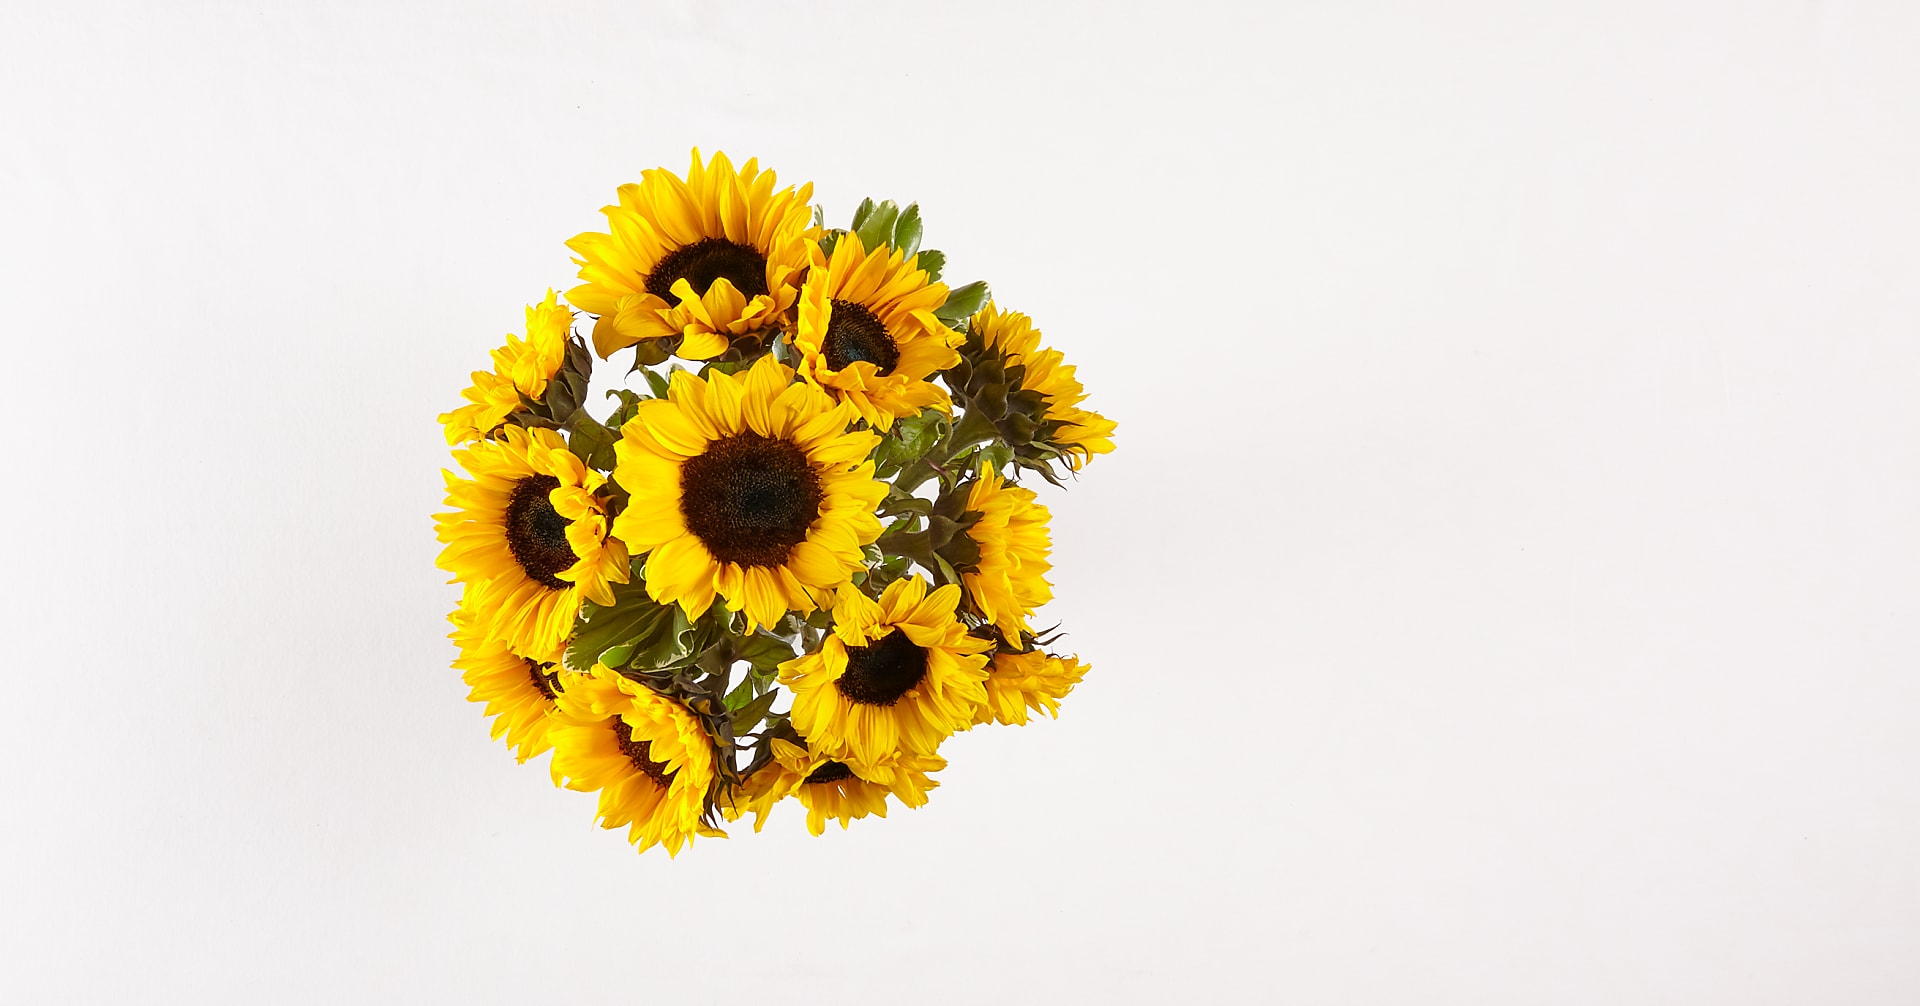 Honey Bee Sunflower Bouquet - Image 3 Of 4